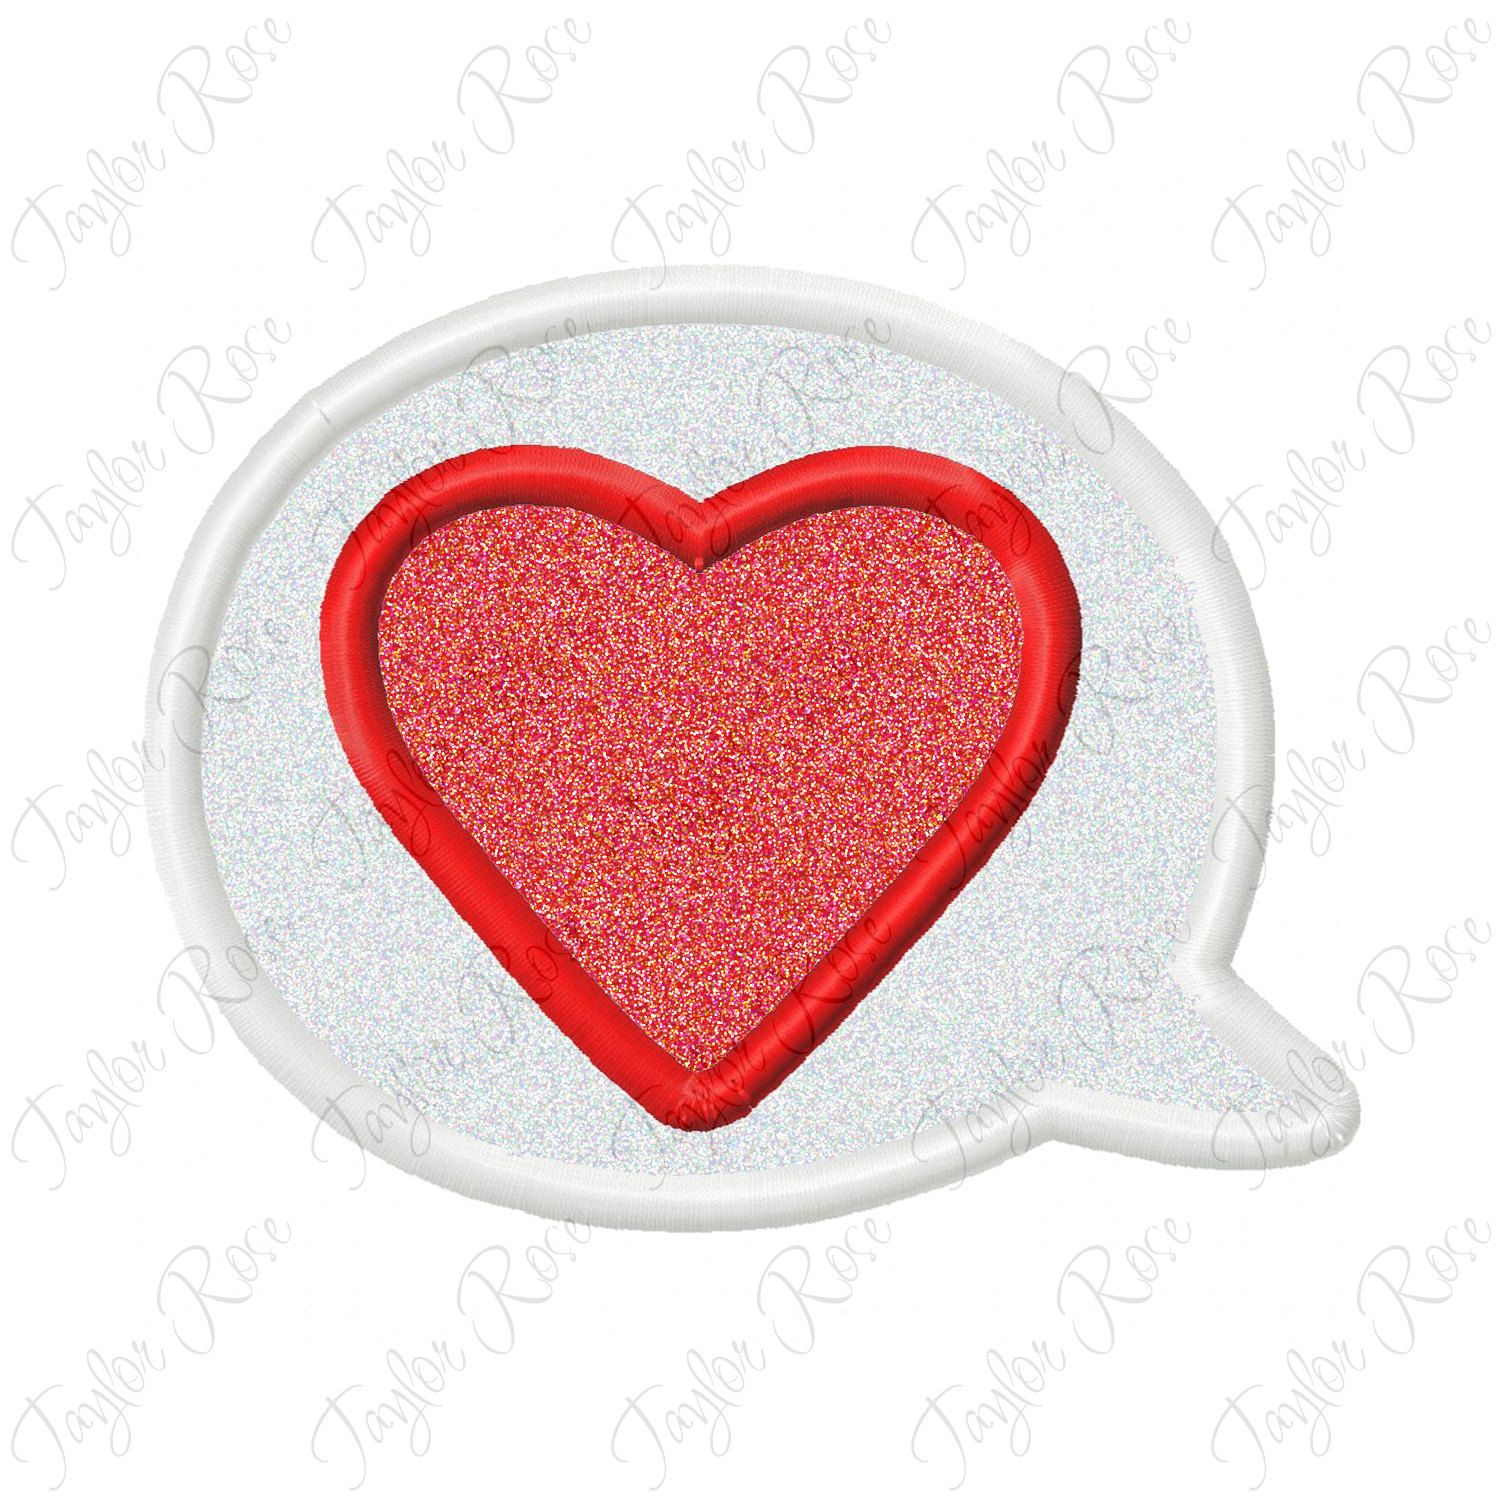 Word Bubble Heart Applique Machine Embroidery Design 4x4 5x7 6x10 love INSTANT DOWNLOAD by TaylorRoseDesigns on Etsy